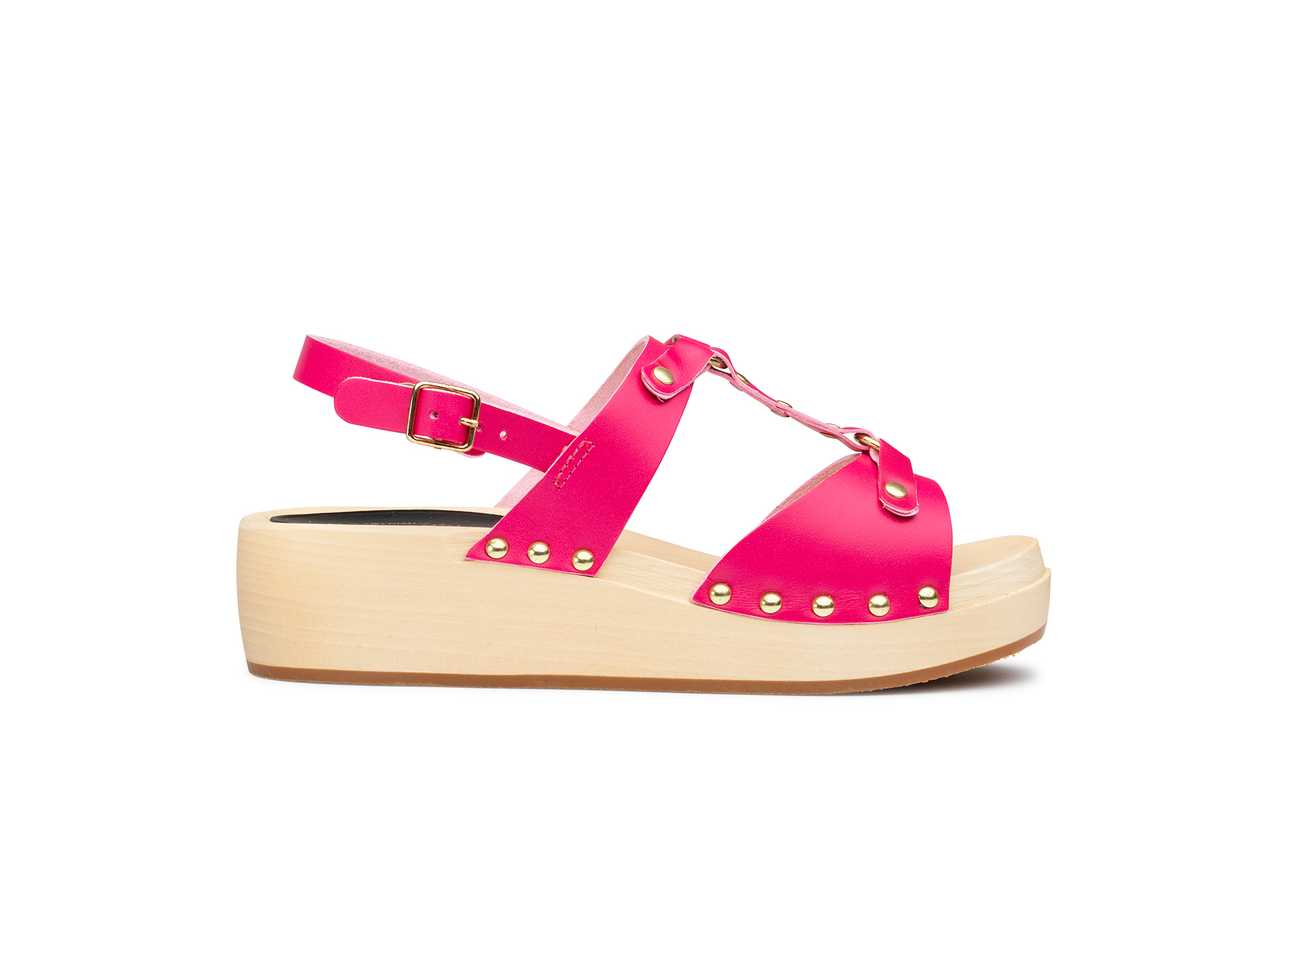 Rivet Sandal Cherry Pink